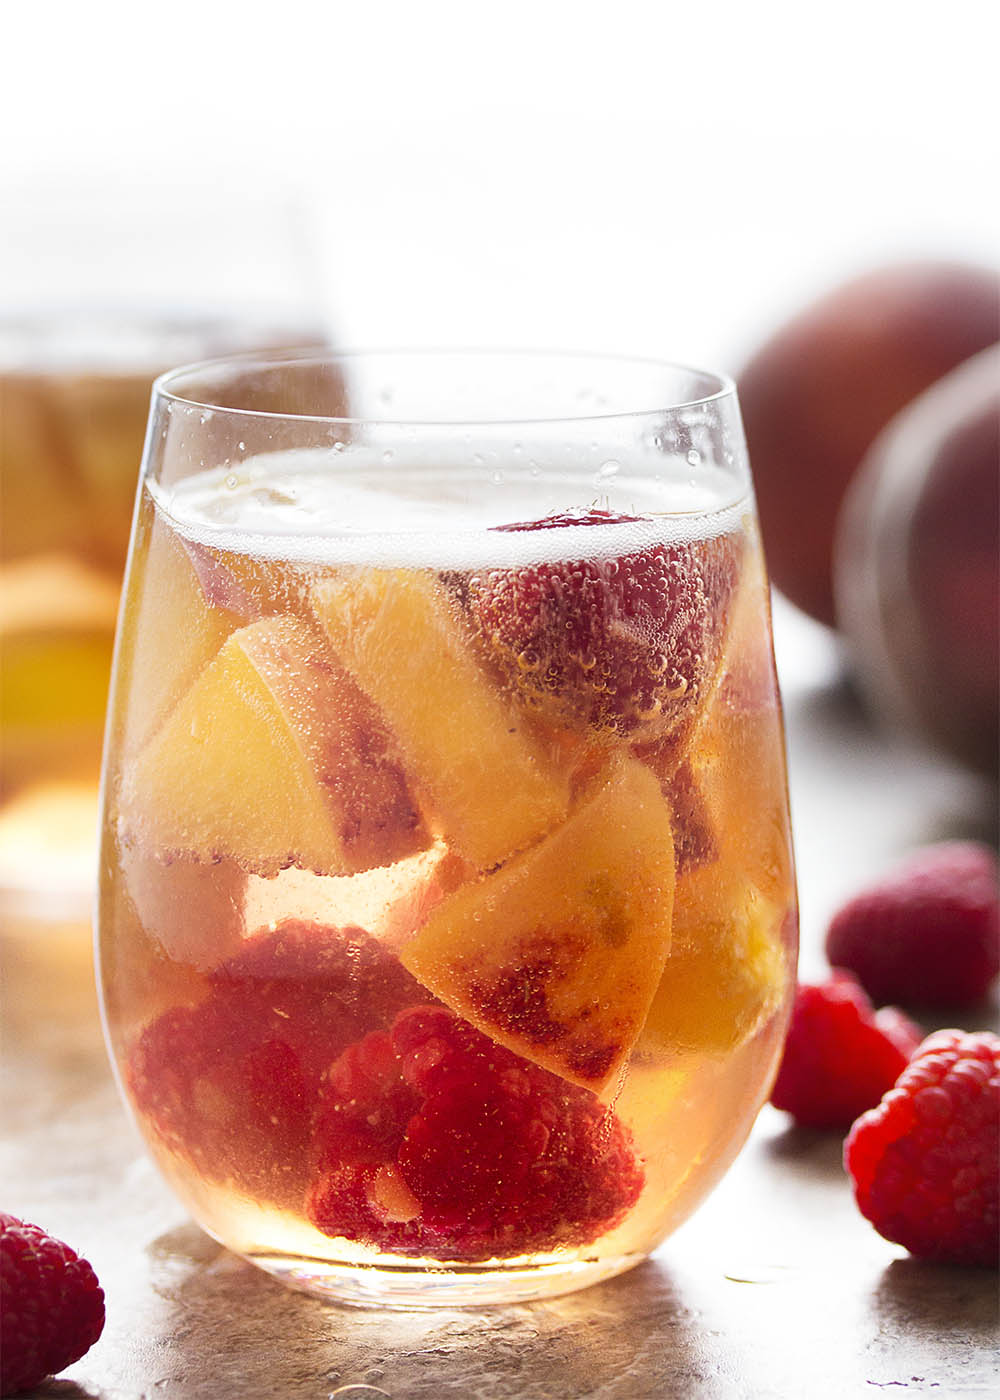 Easy White Peach Sangria - This sparkling white peach sangria is super easy to mix together and just as easy to enjoy on a warm day. Not too sweet and full of fizz from the bubbly, it's the taste of summer in a glass! | justalittlebitofbacon.com